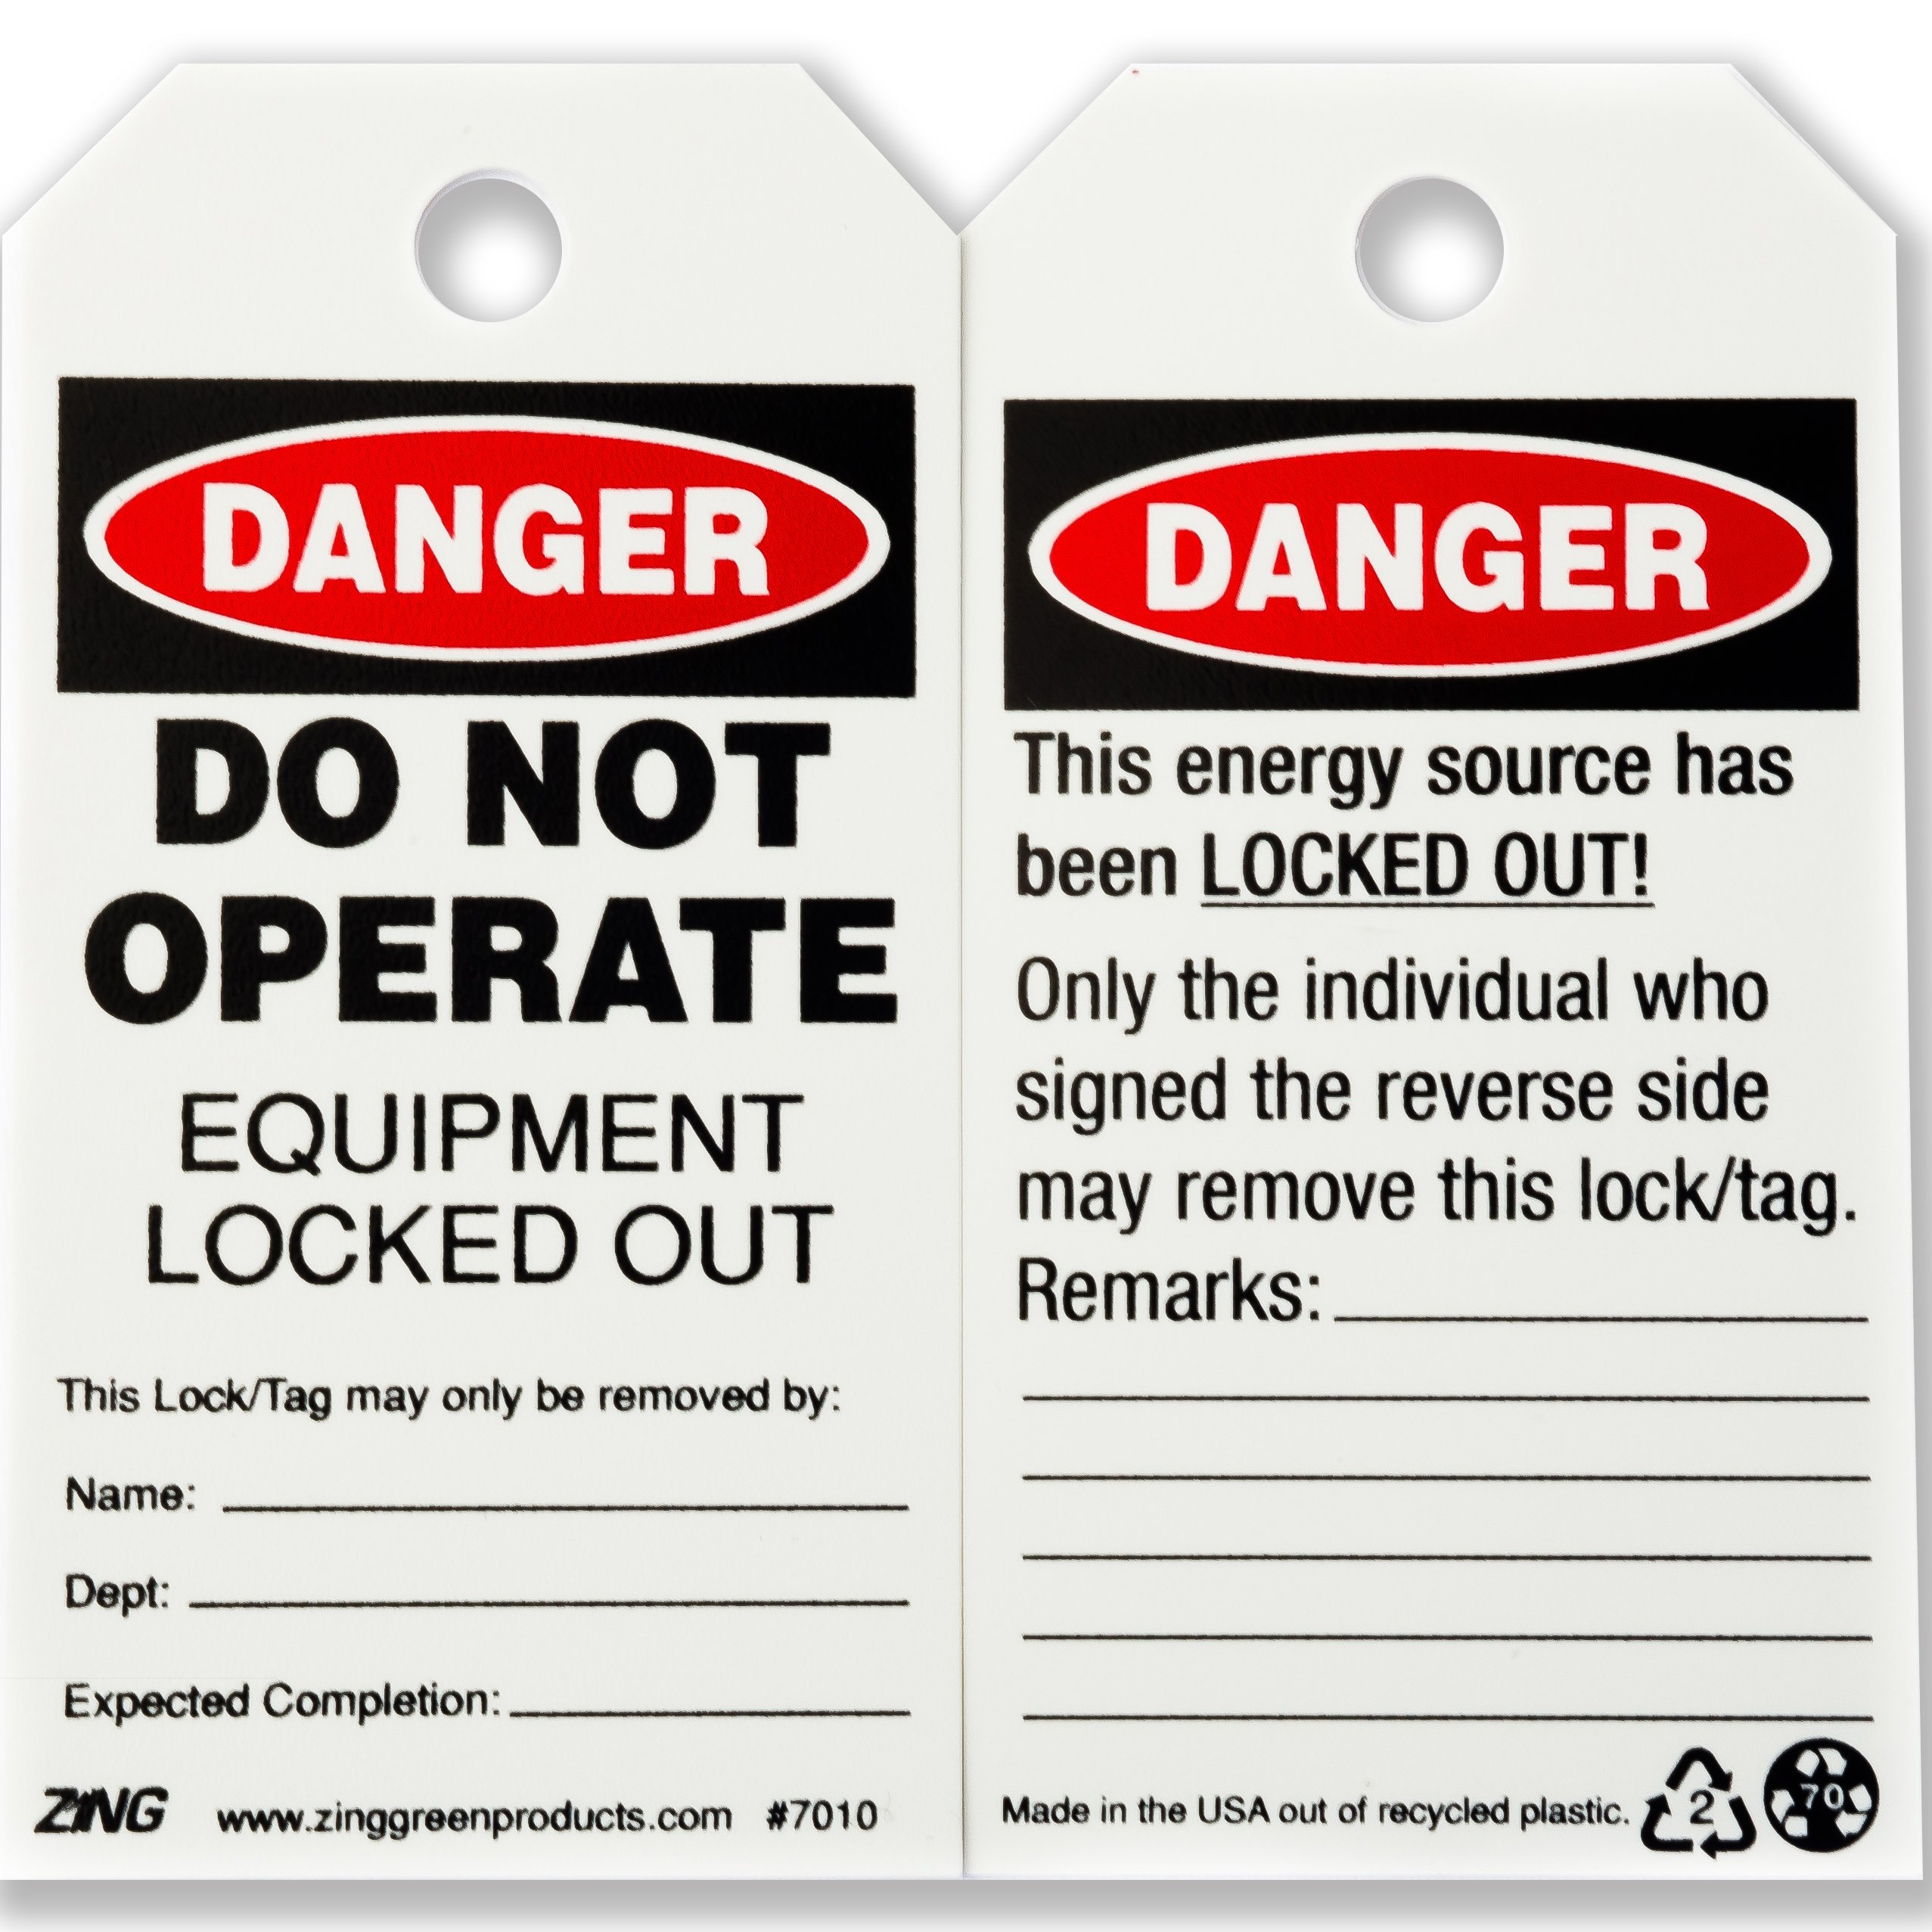 ZING 7010 Eco Safety Tag, DANGER Do Not Operate, 5.75Hx3W, 10 Pack